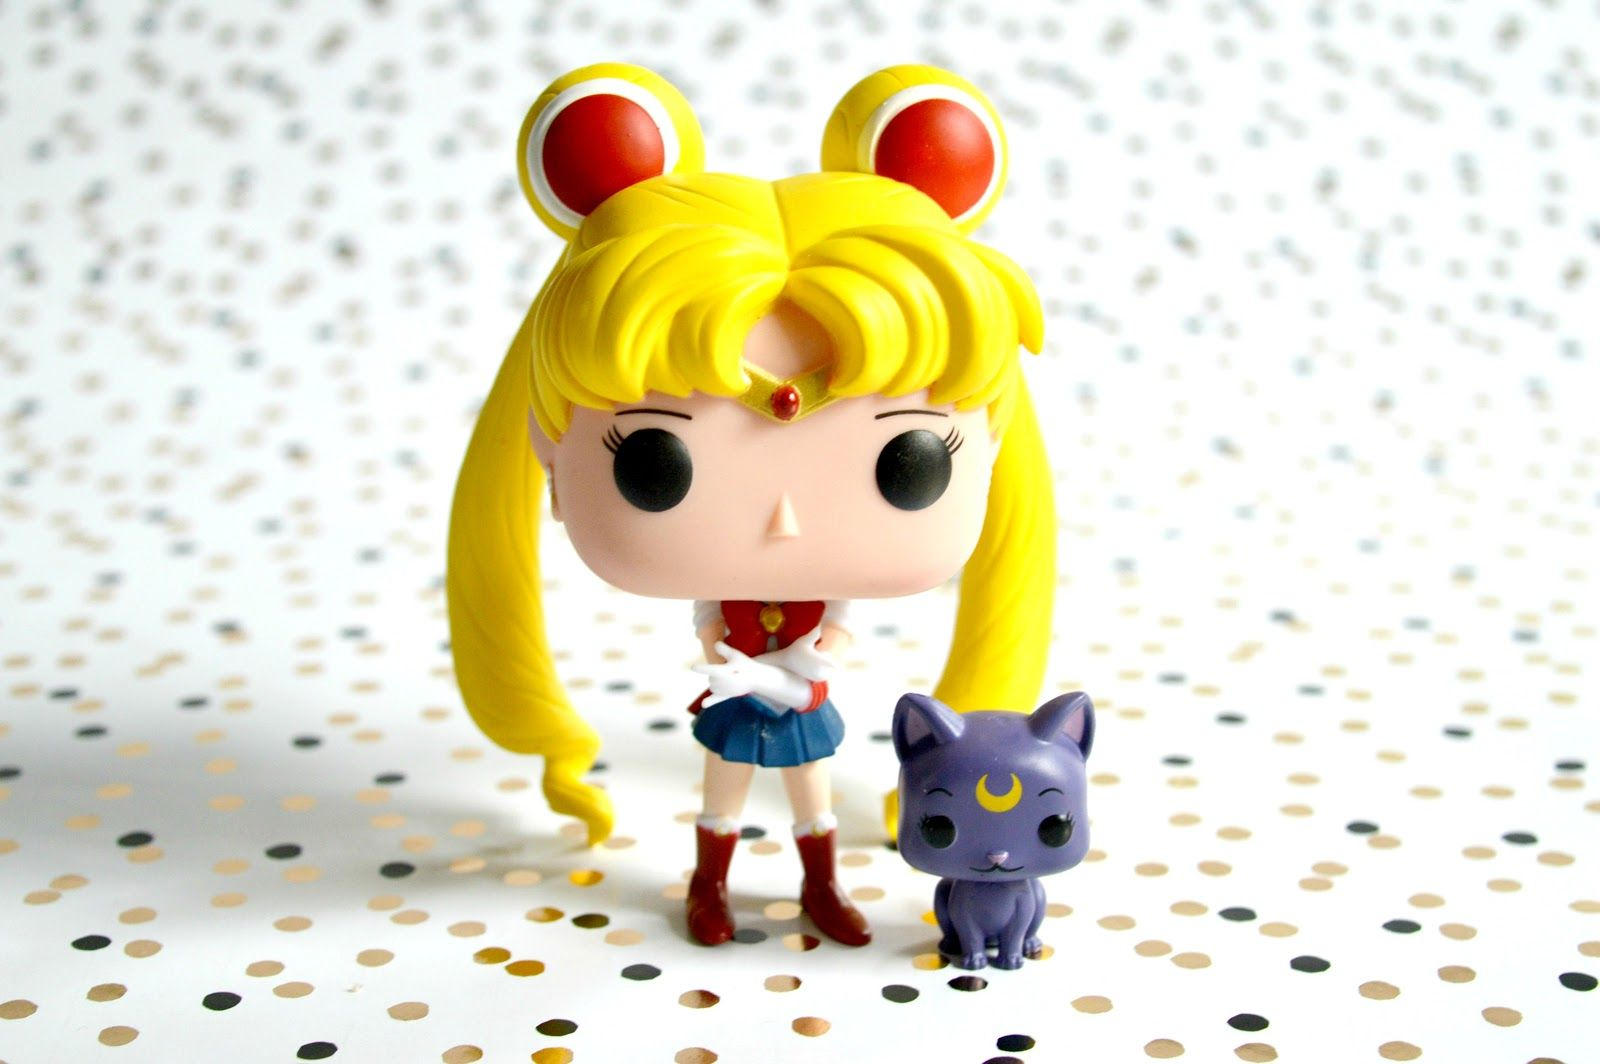 Is The Sailor Moon Funko POP! The Champion Of Justice